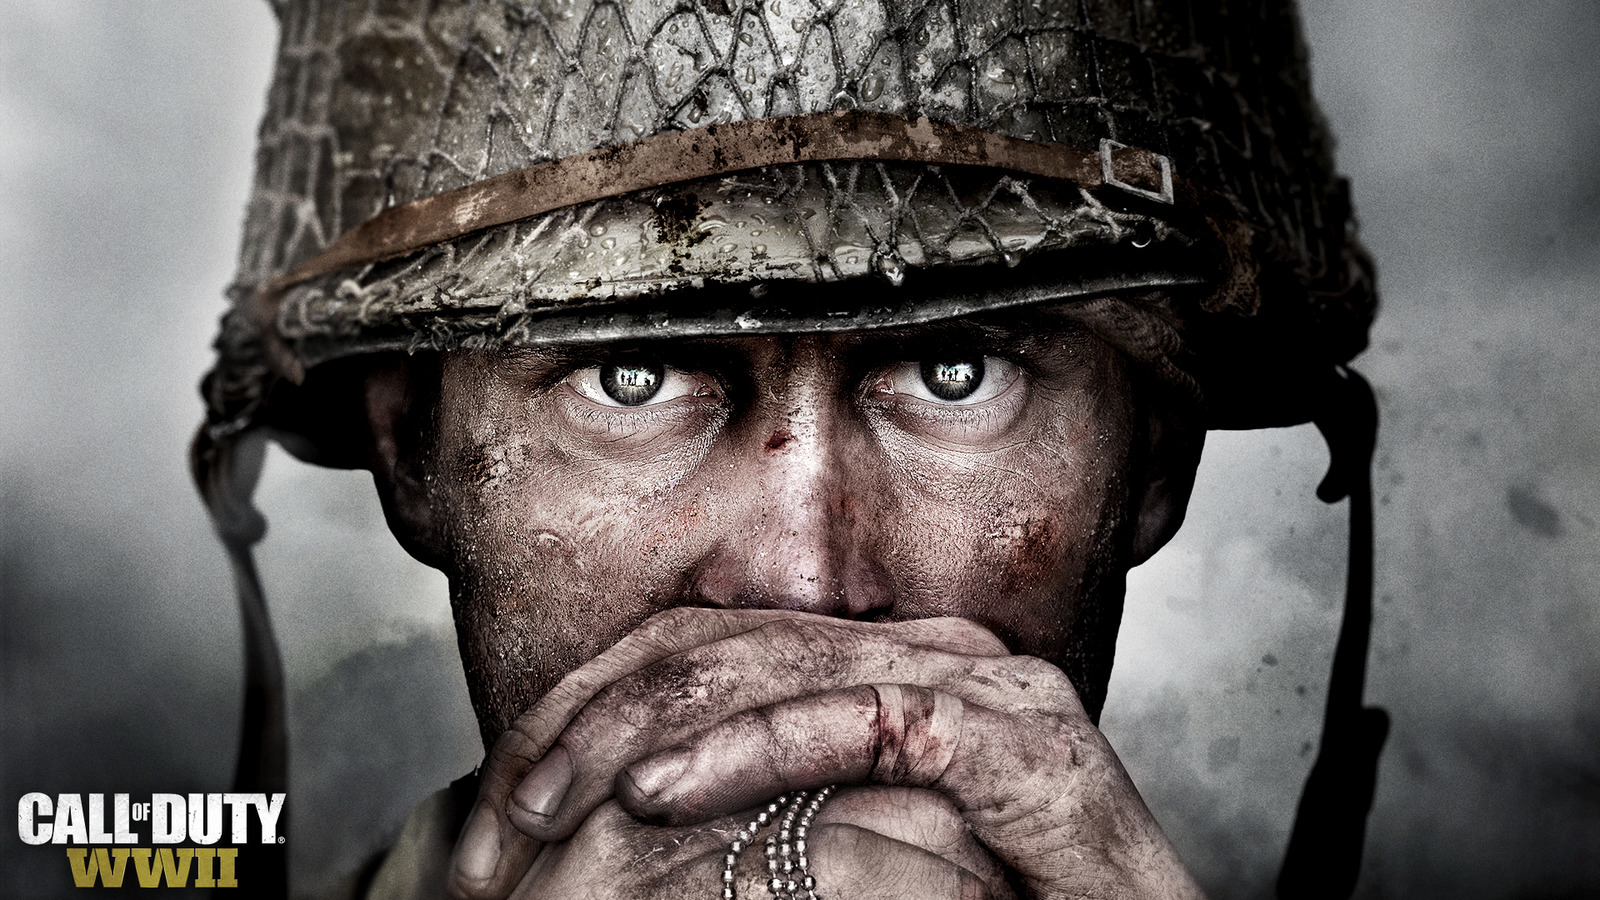 call of duty wwi